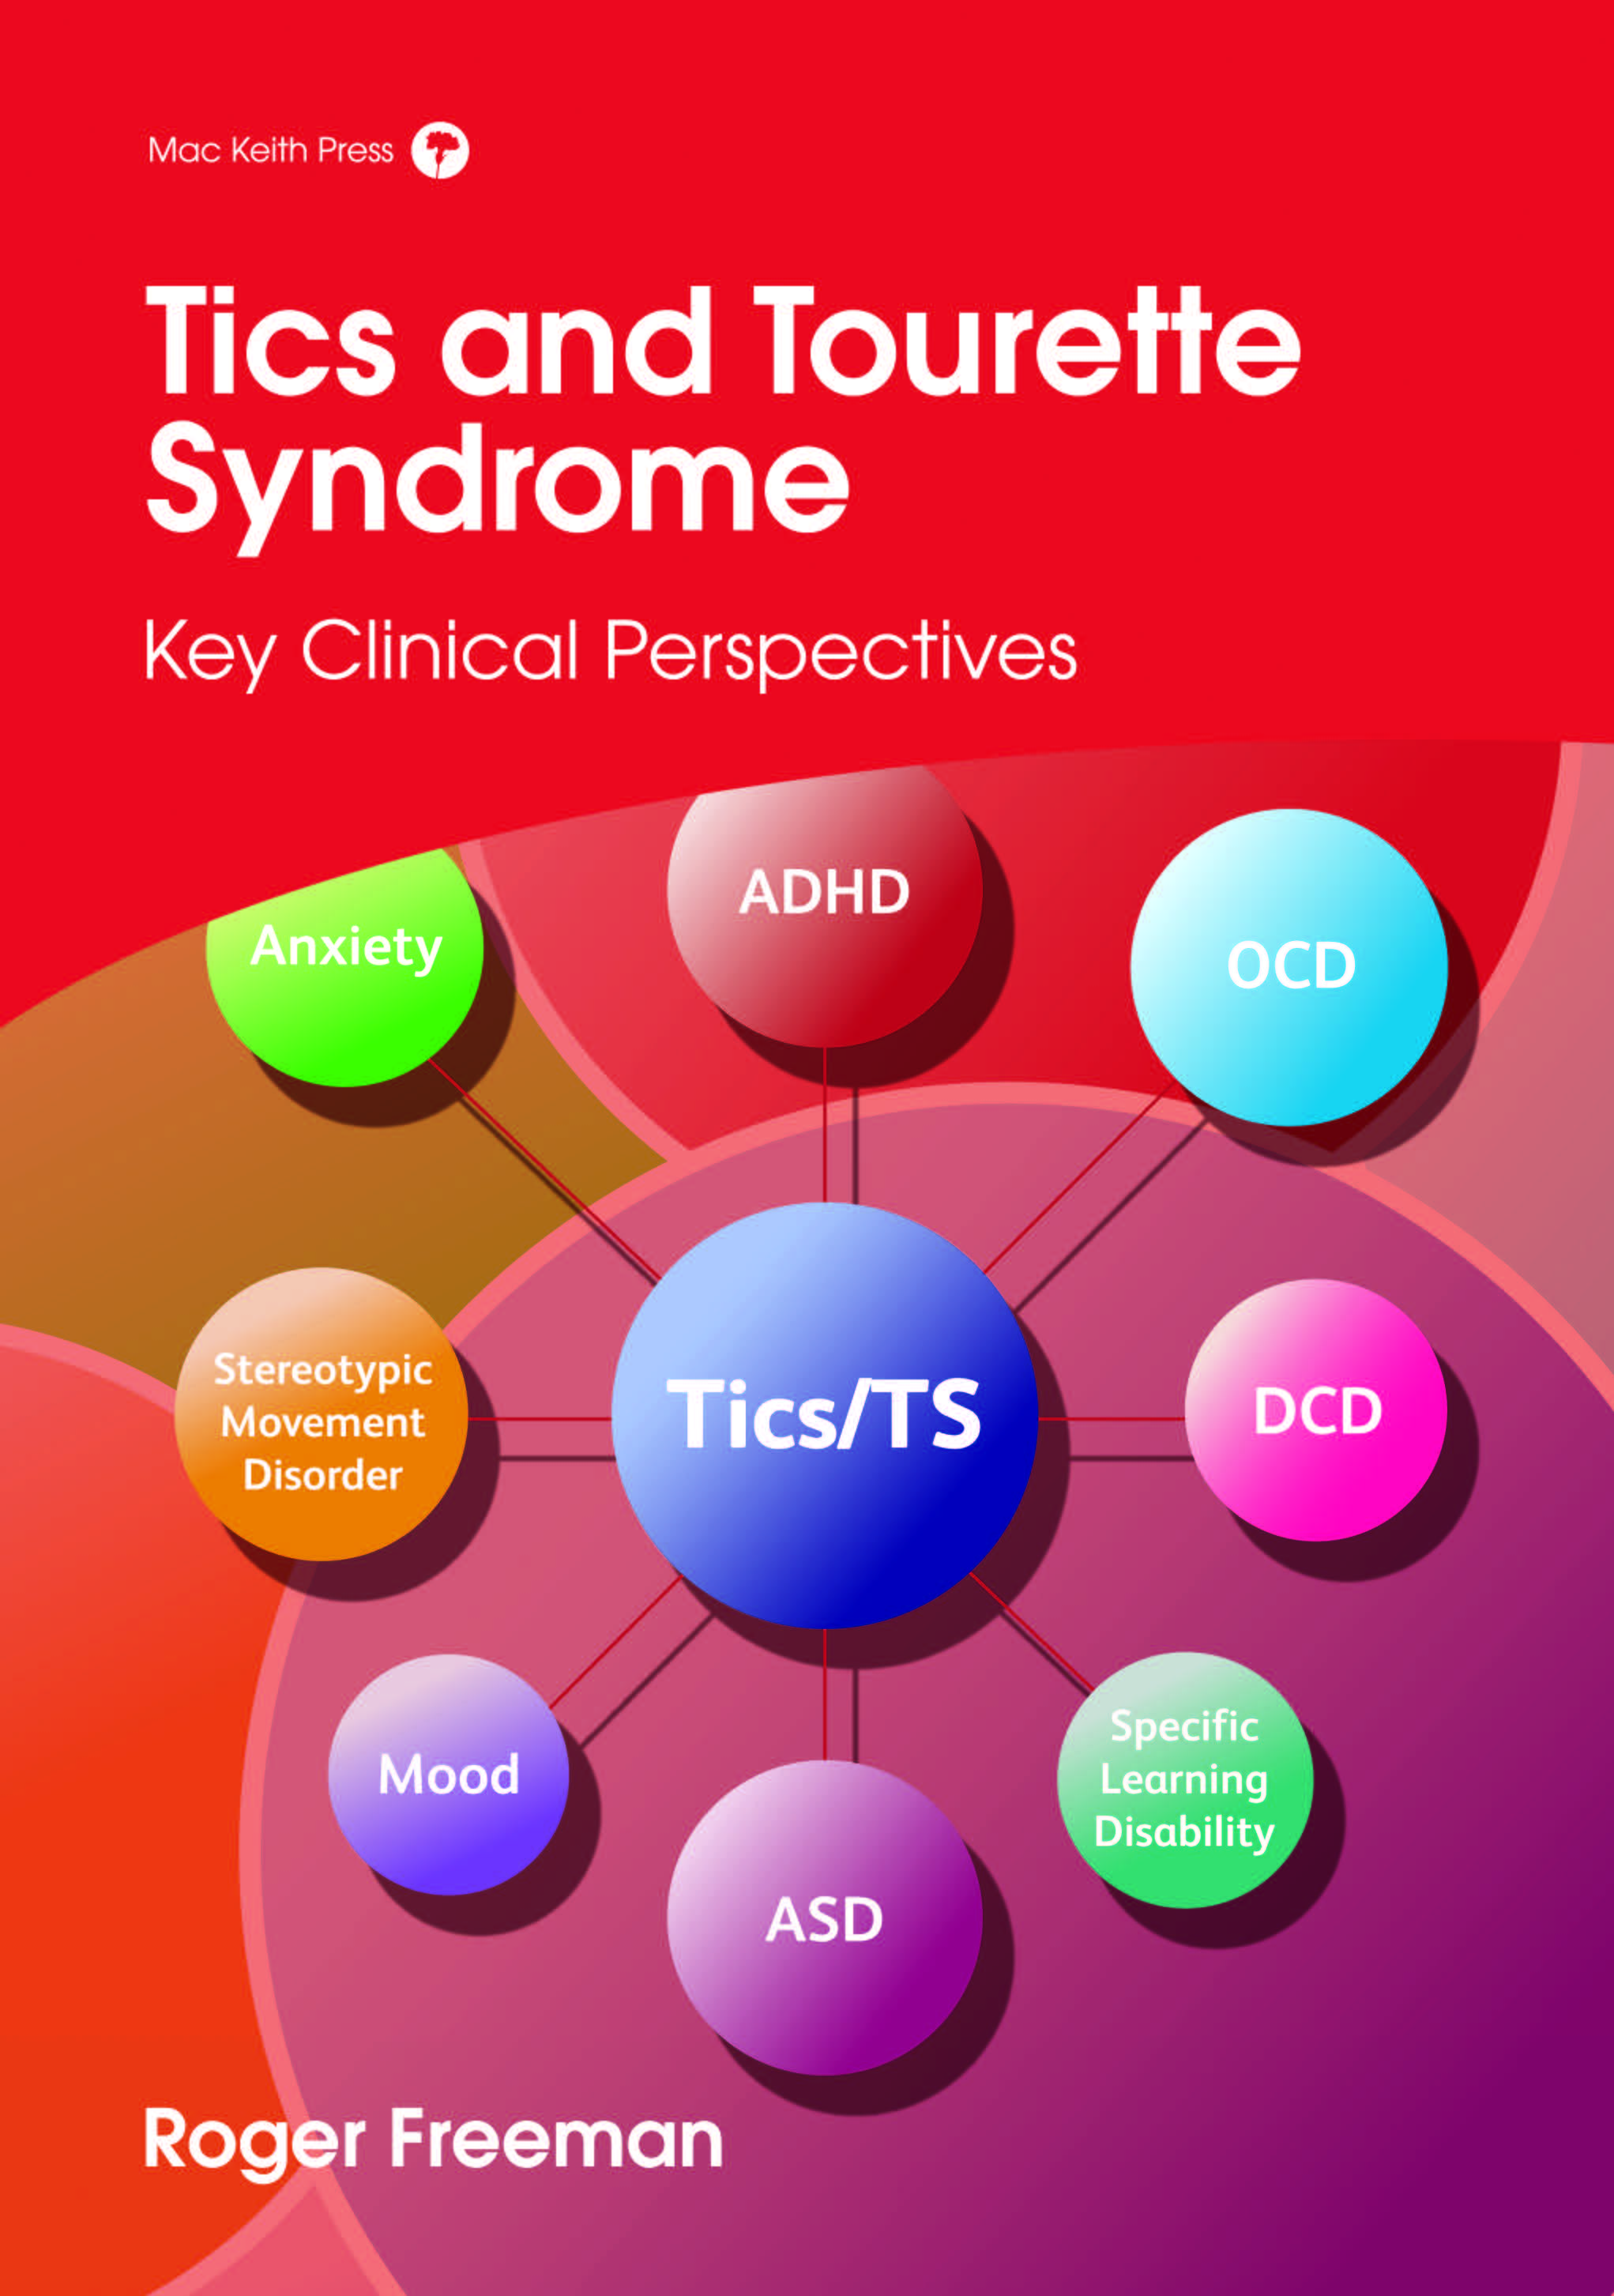 Tics and Tourette Syndrome, Freeman, cover